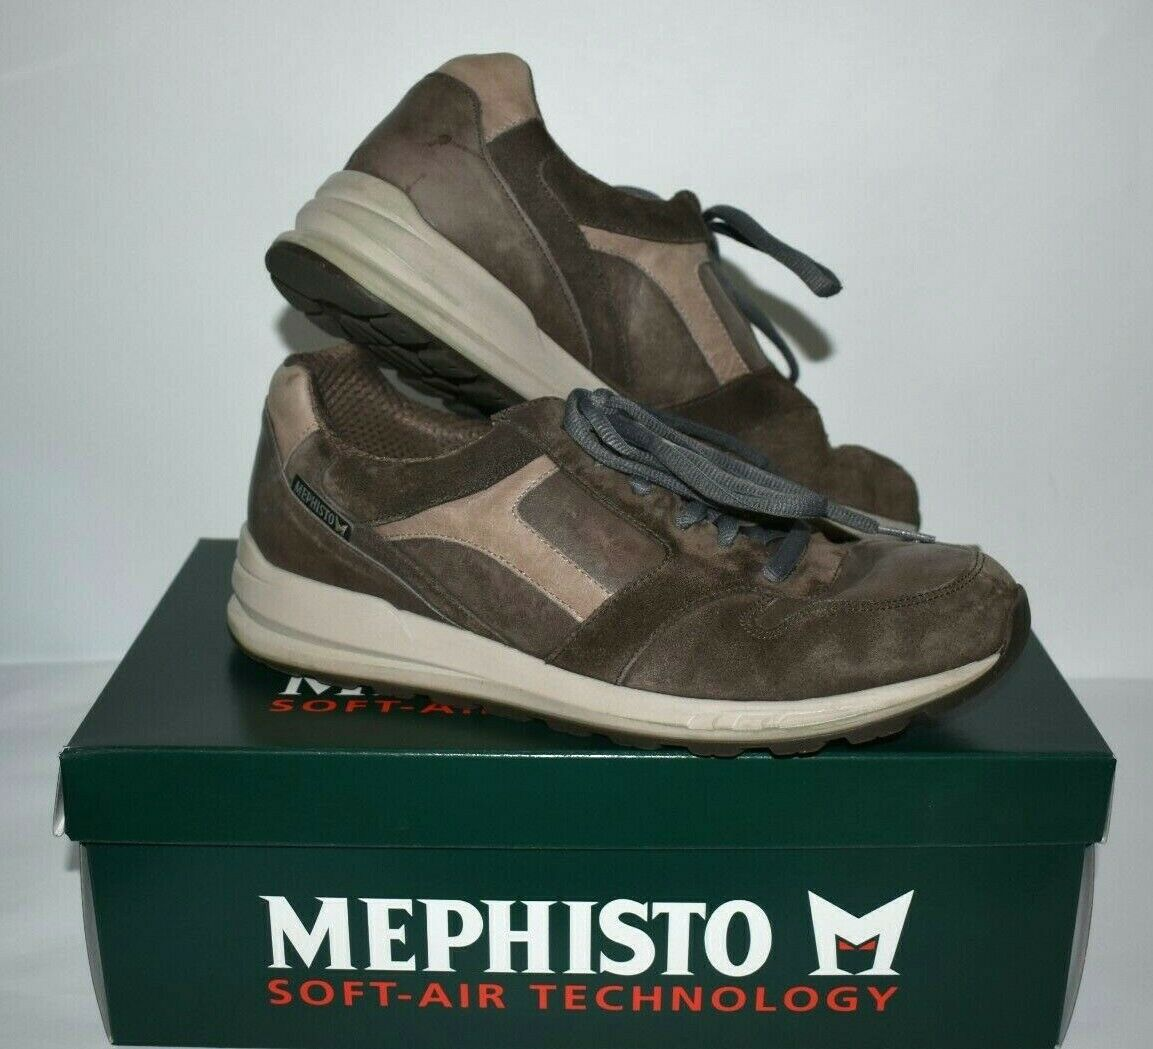 Mephisto Men's Runoff Air Jet System Leather Sneakers Lace Up Gray Size Size 9.5